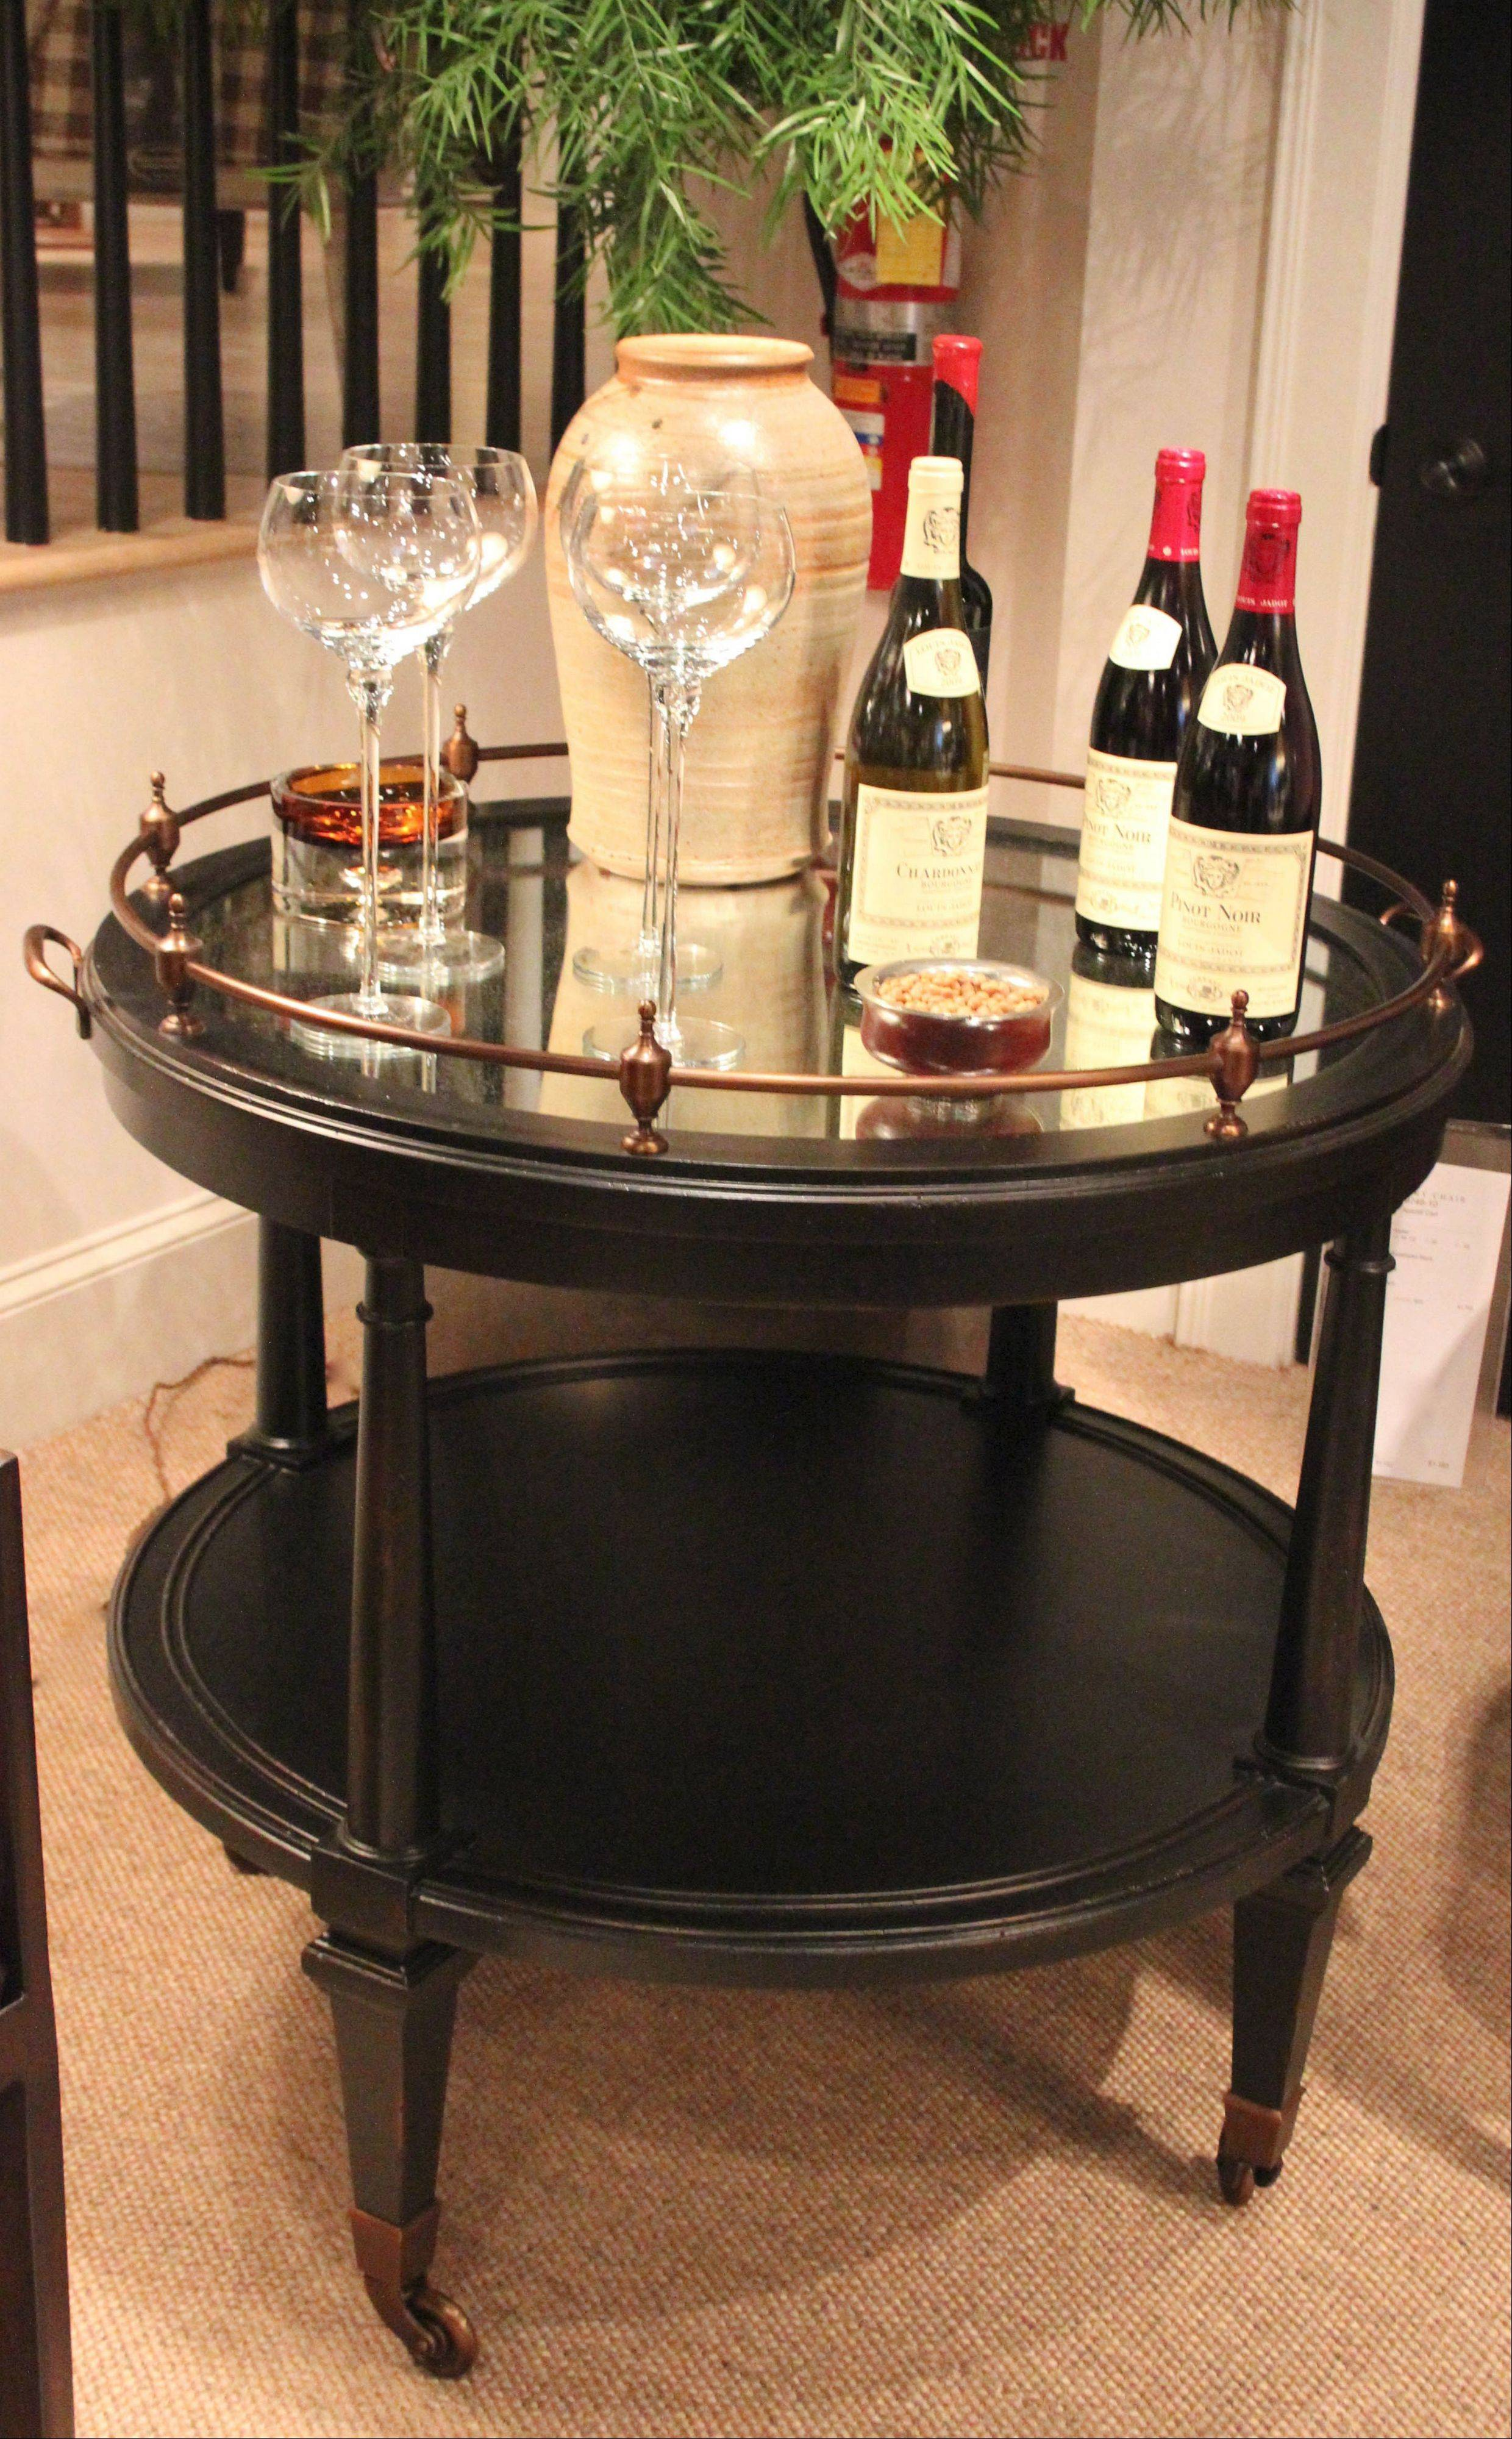 A rolling Aperitif Bar Cart by Hickory Chair has a antique-looking, mirrored tray top with brass and a black finish.